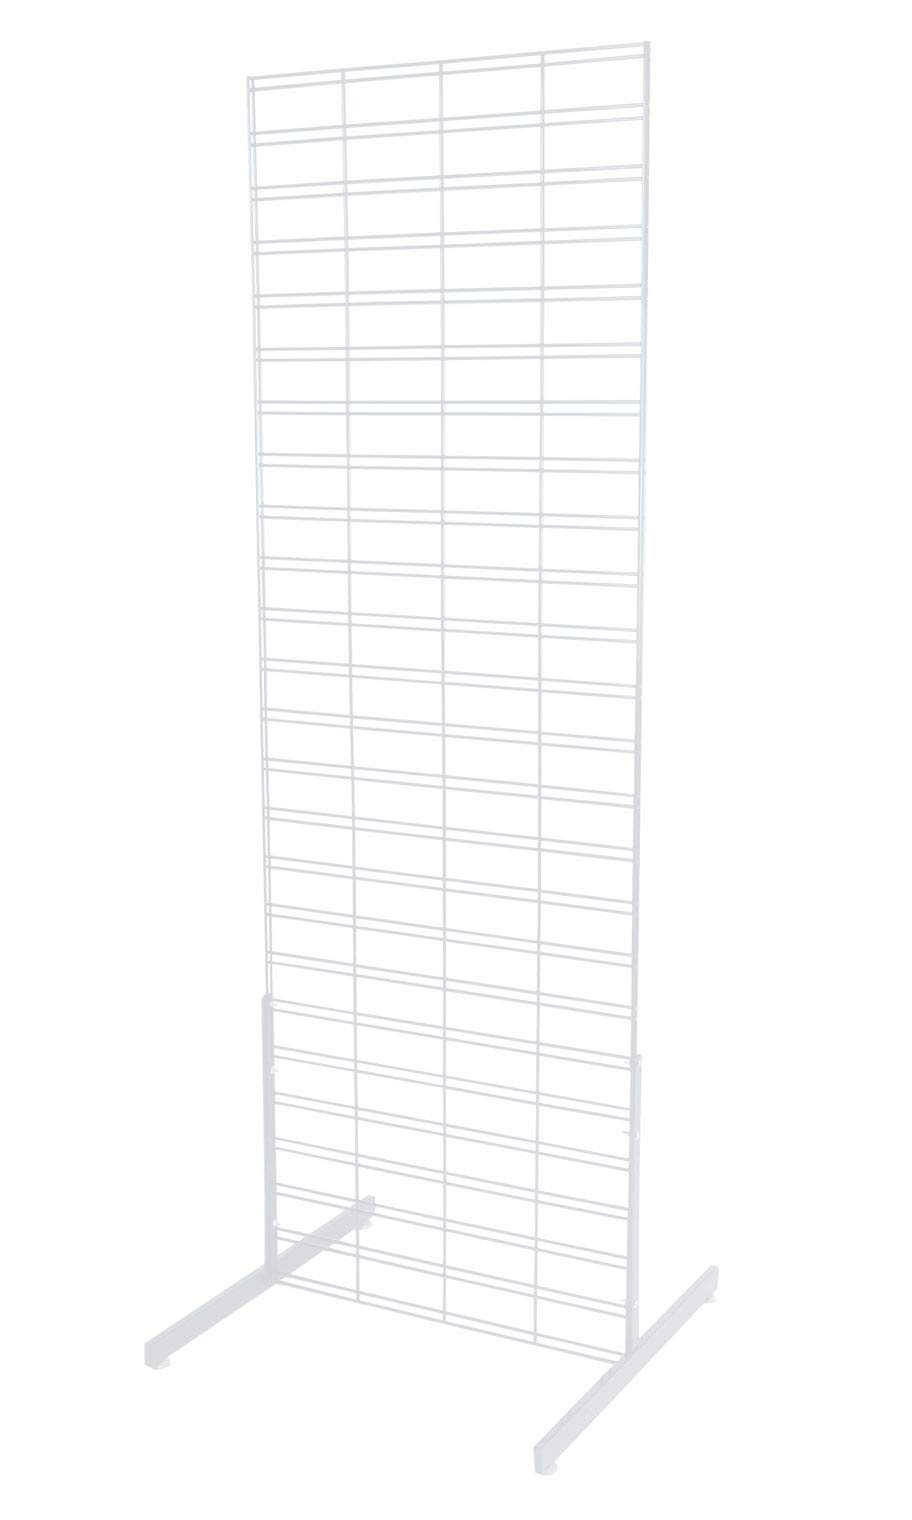 2 x 6 Foot White Slat Grid Standing Grid Screen - Includes Slat Grid Panel and 2 Grid Legs